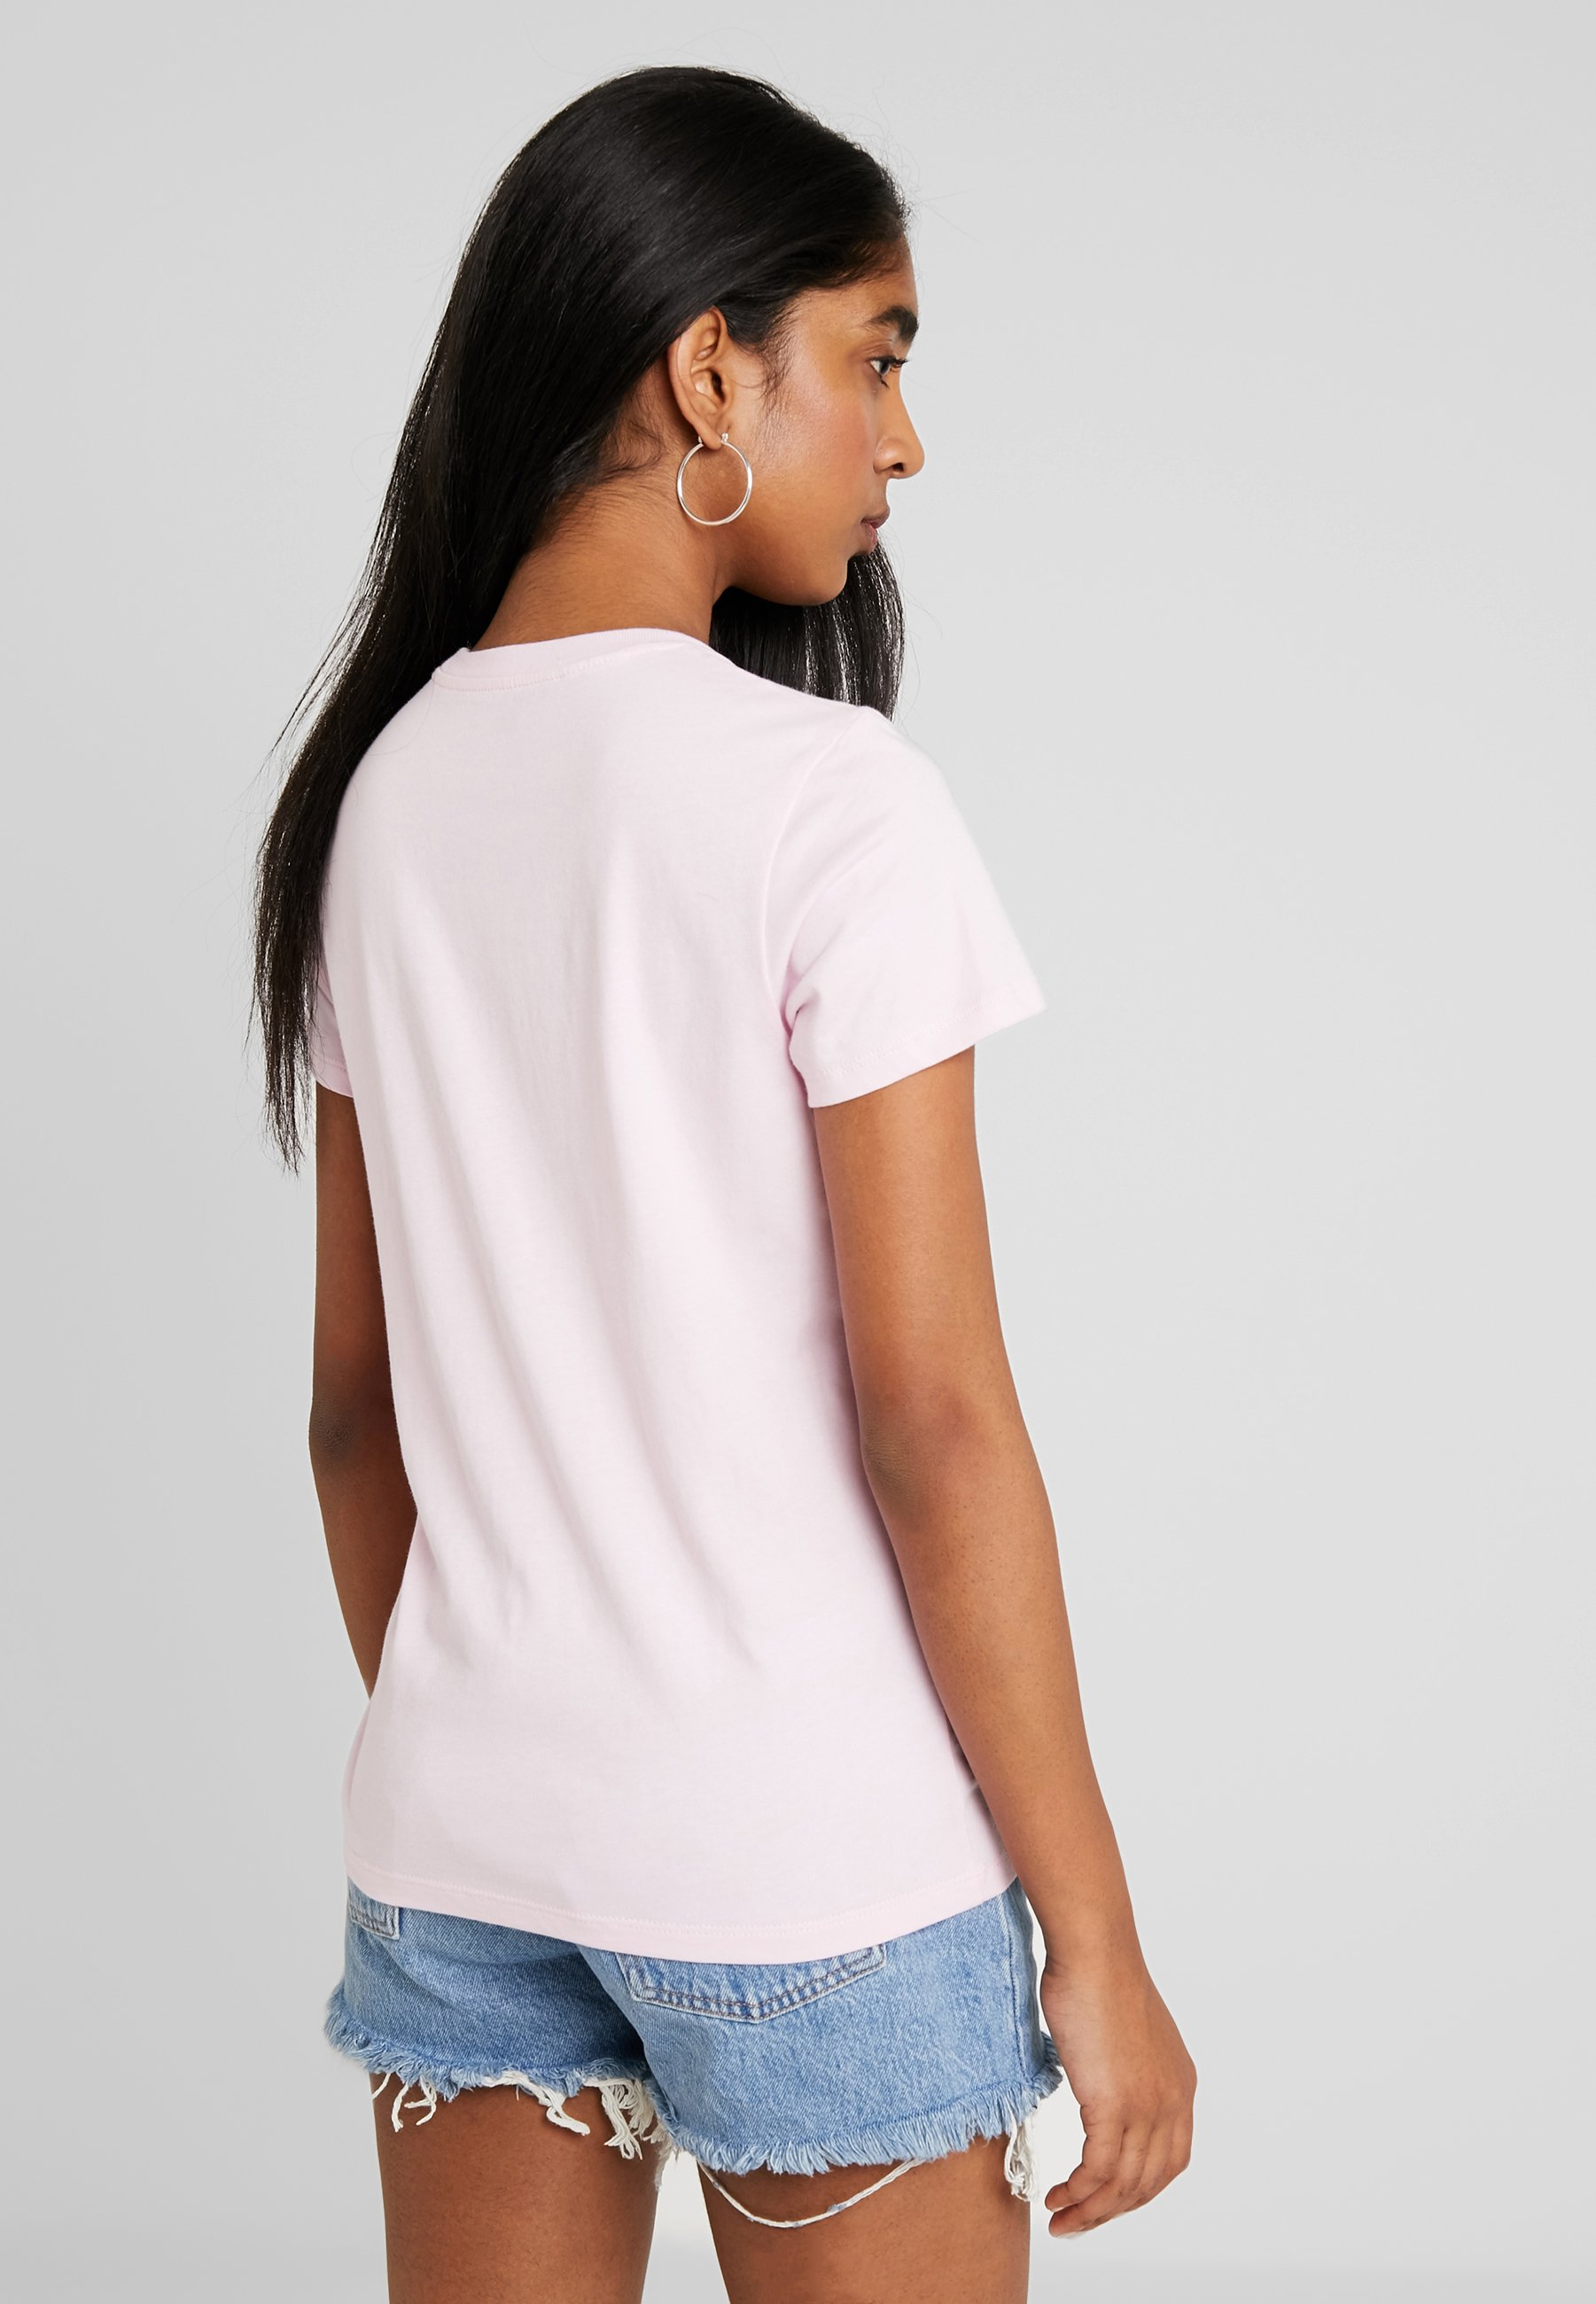 Flock Imprimé The Levi's® TeeT shirt Perfect Lady Pink LqSVUMGzp